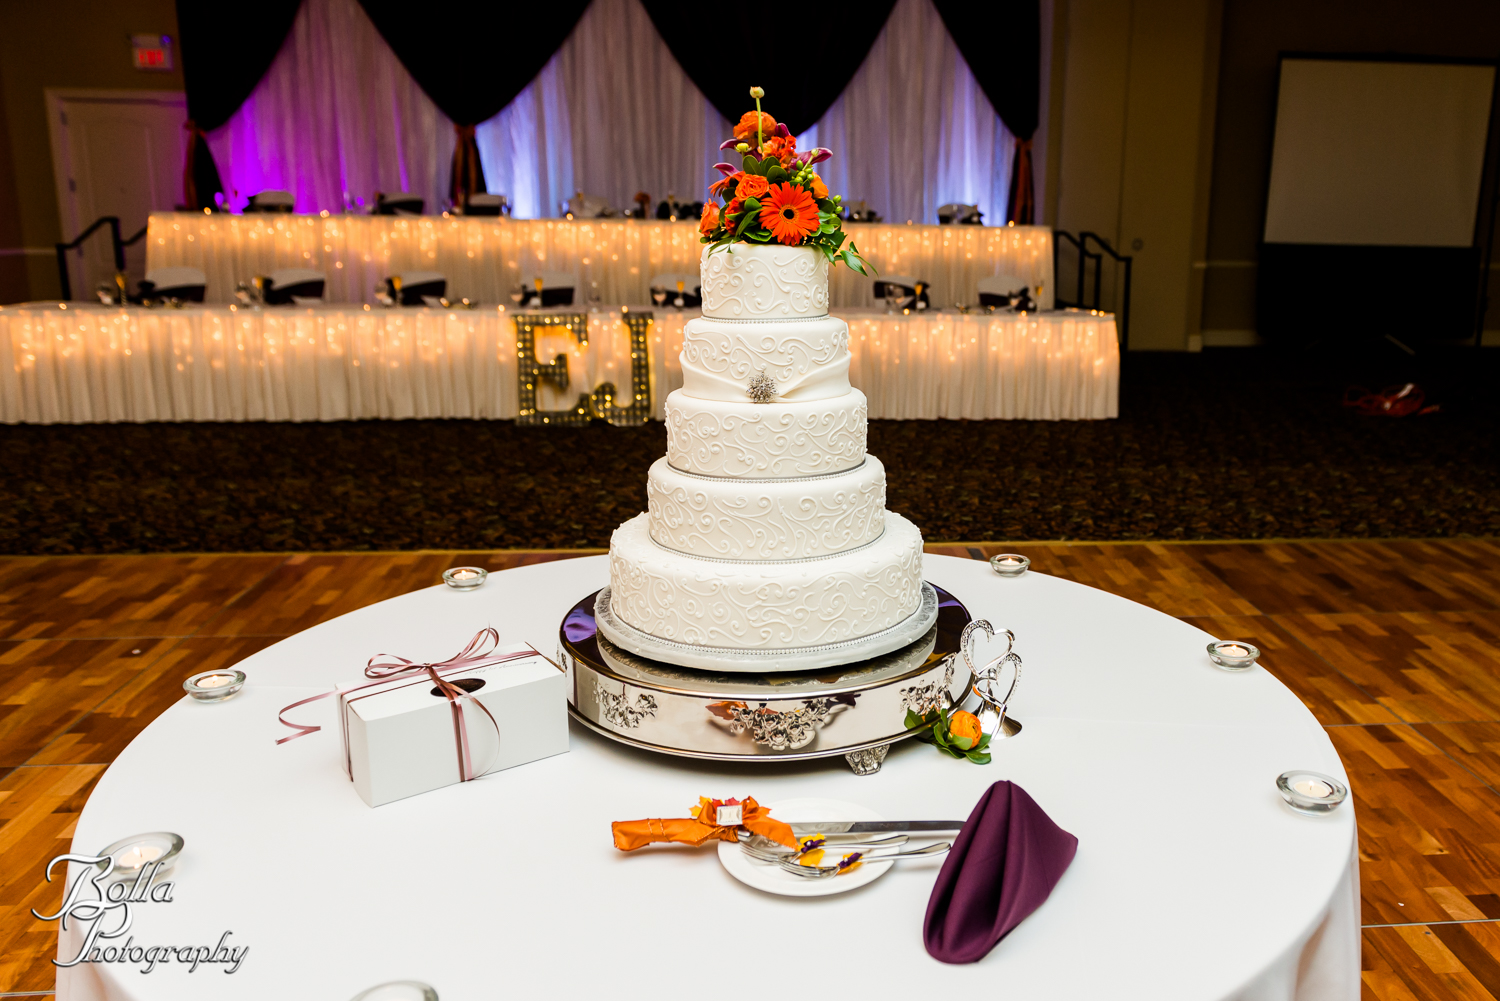 Bolla_Photography_St_Louis_wedding_photographer-0401.jpg